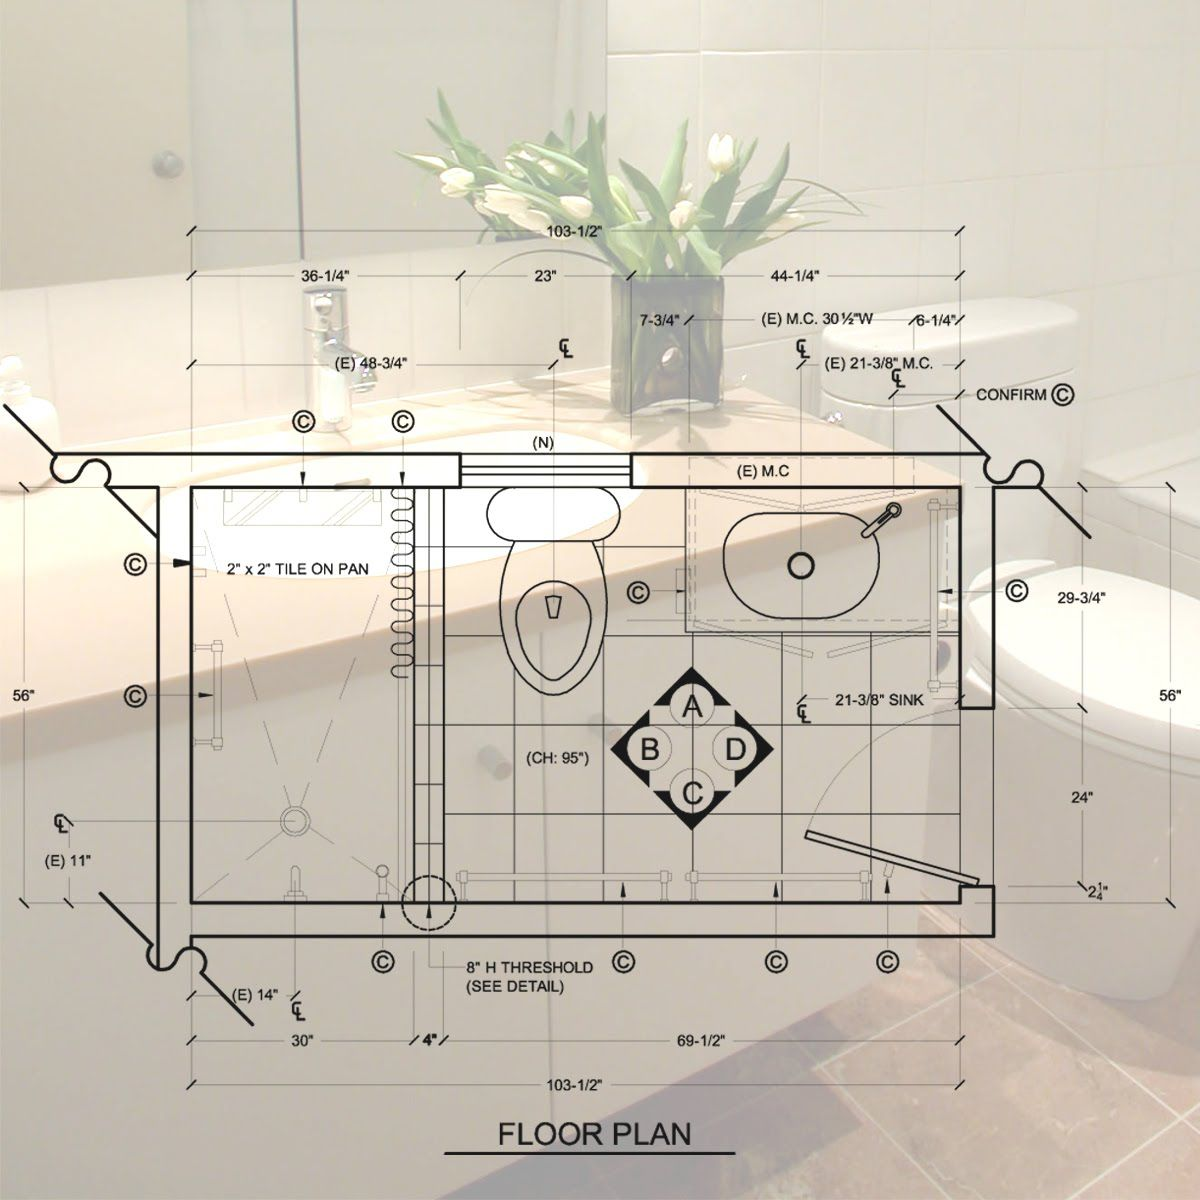 4 X 9 Bathroom Layout. C L K Design Studio Standard 5x 8 Bathroom Design Construction Document